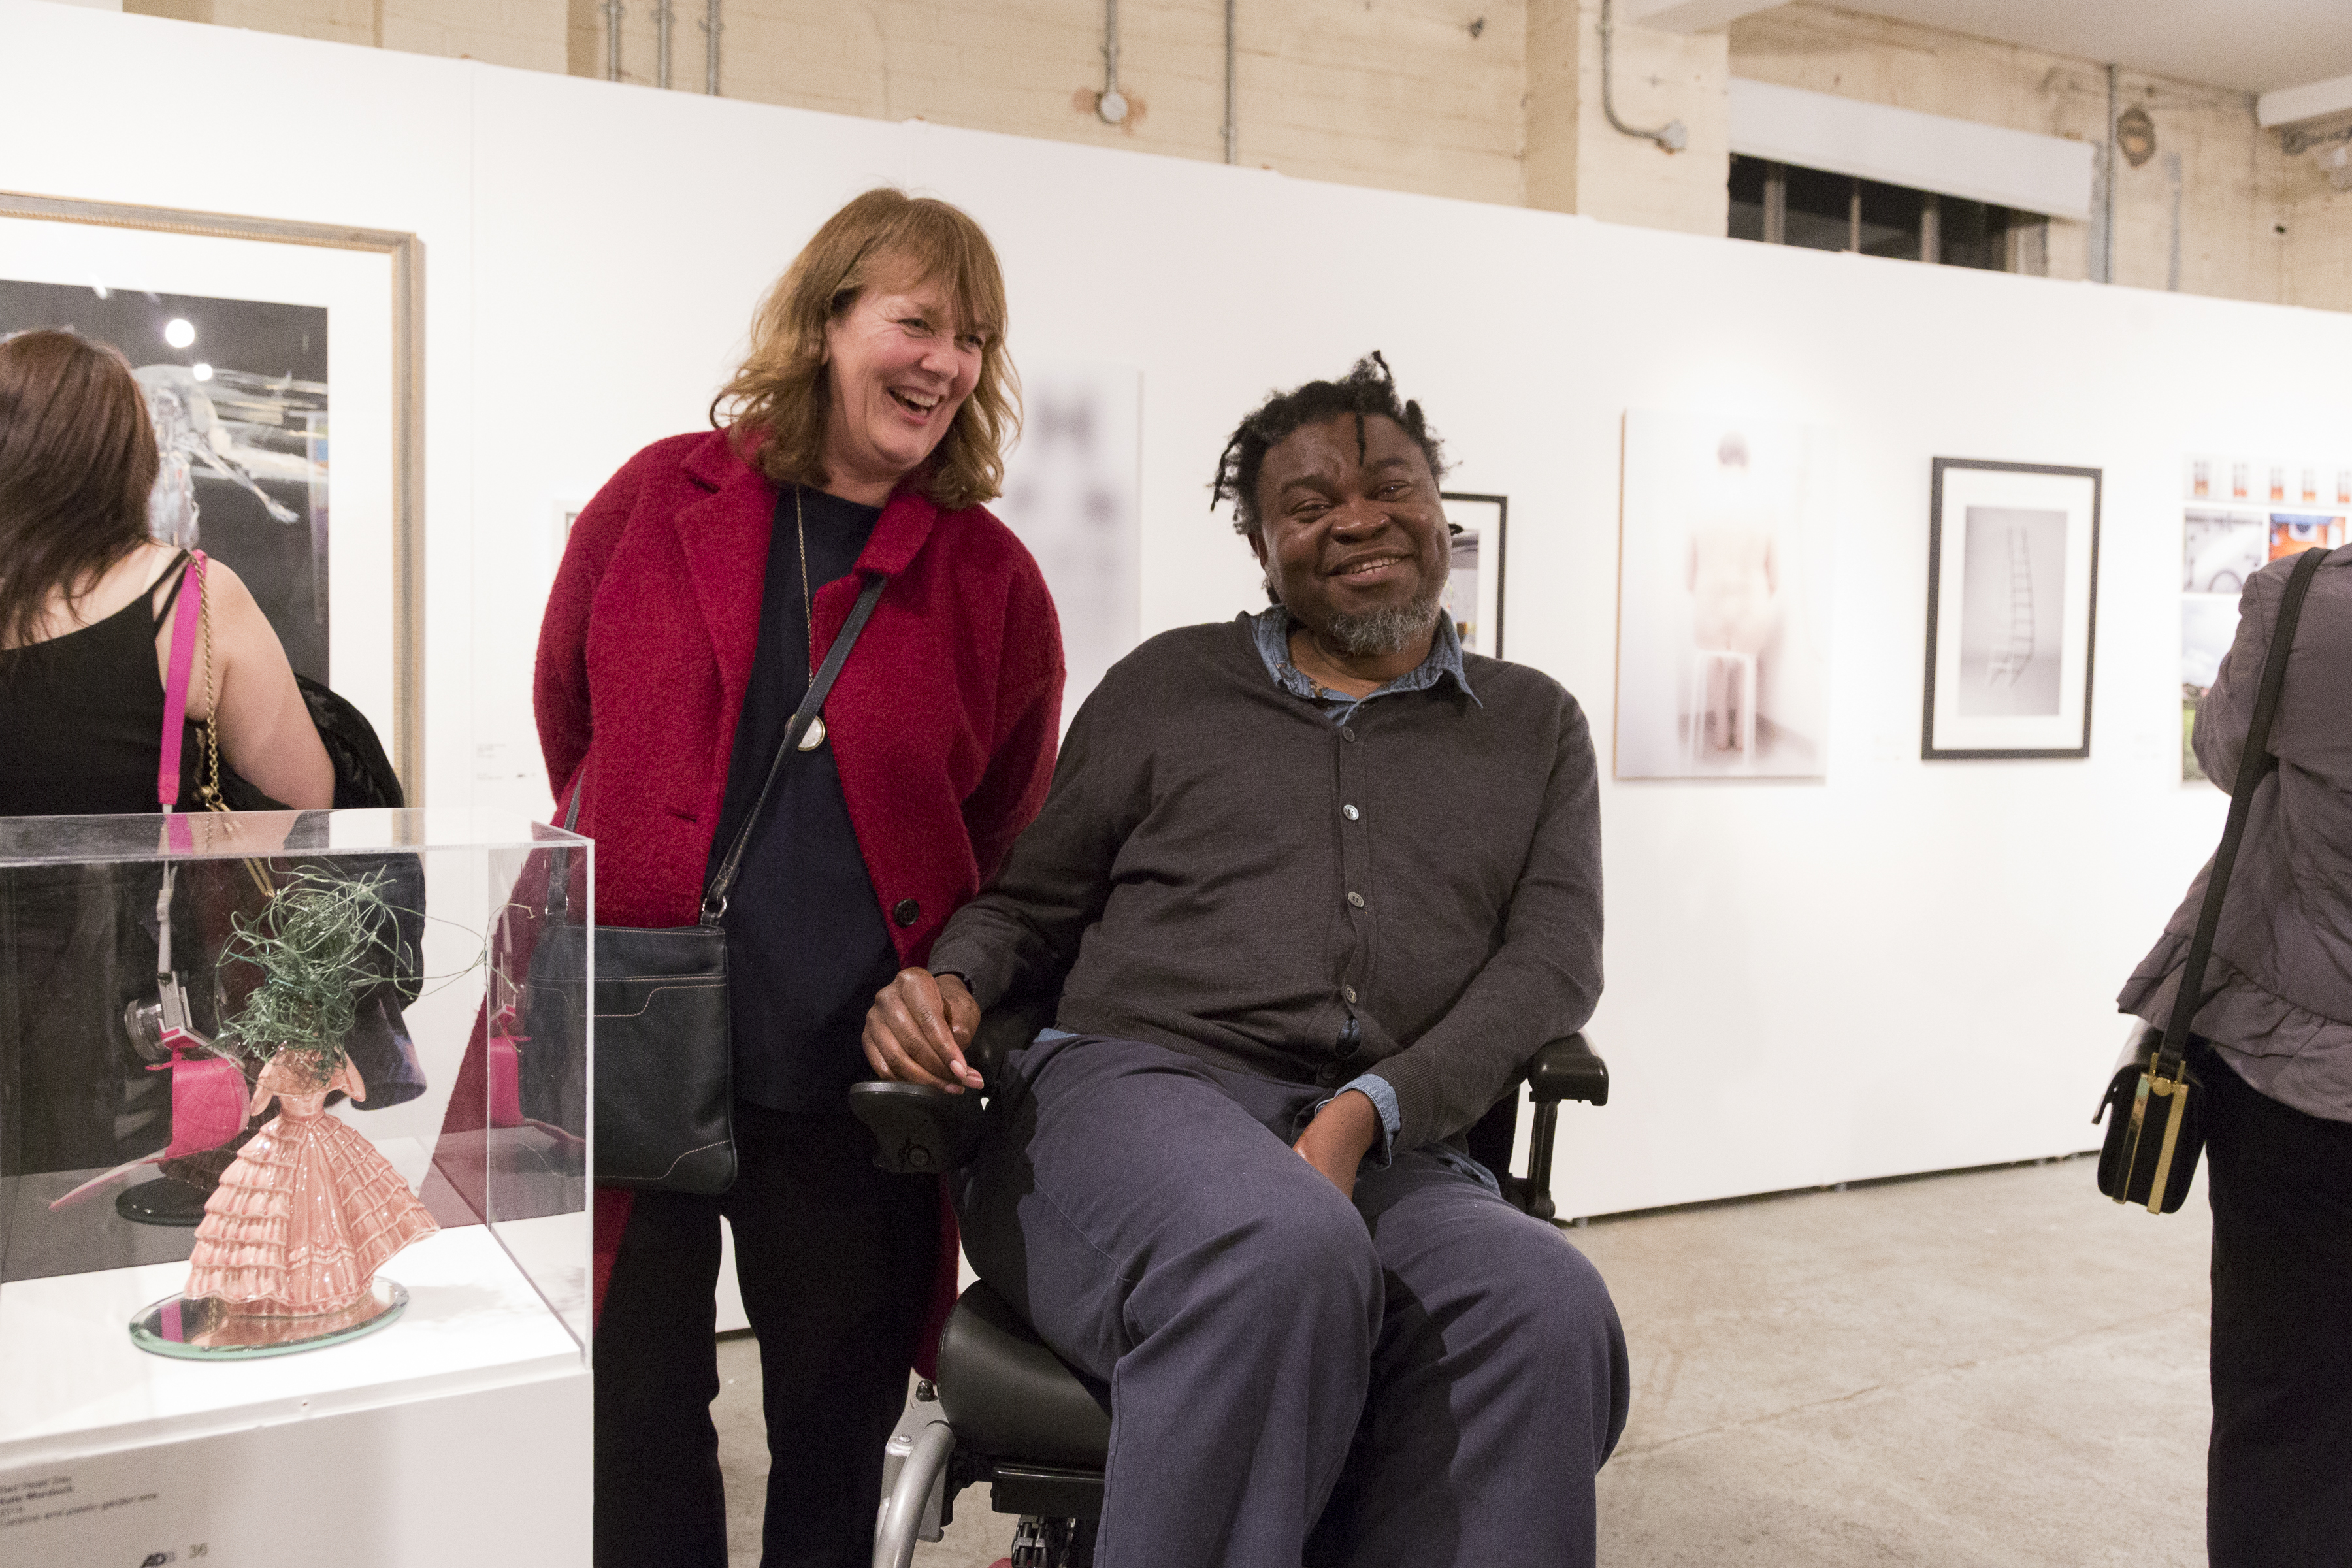 Kate Murdoch and Yinka Shonibare MBE pose beside Kates sculpture.